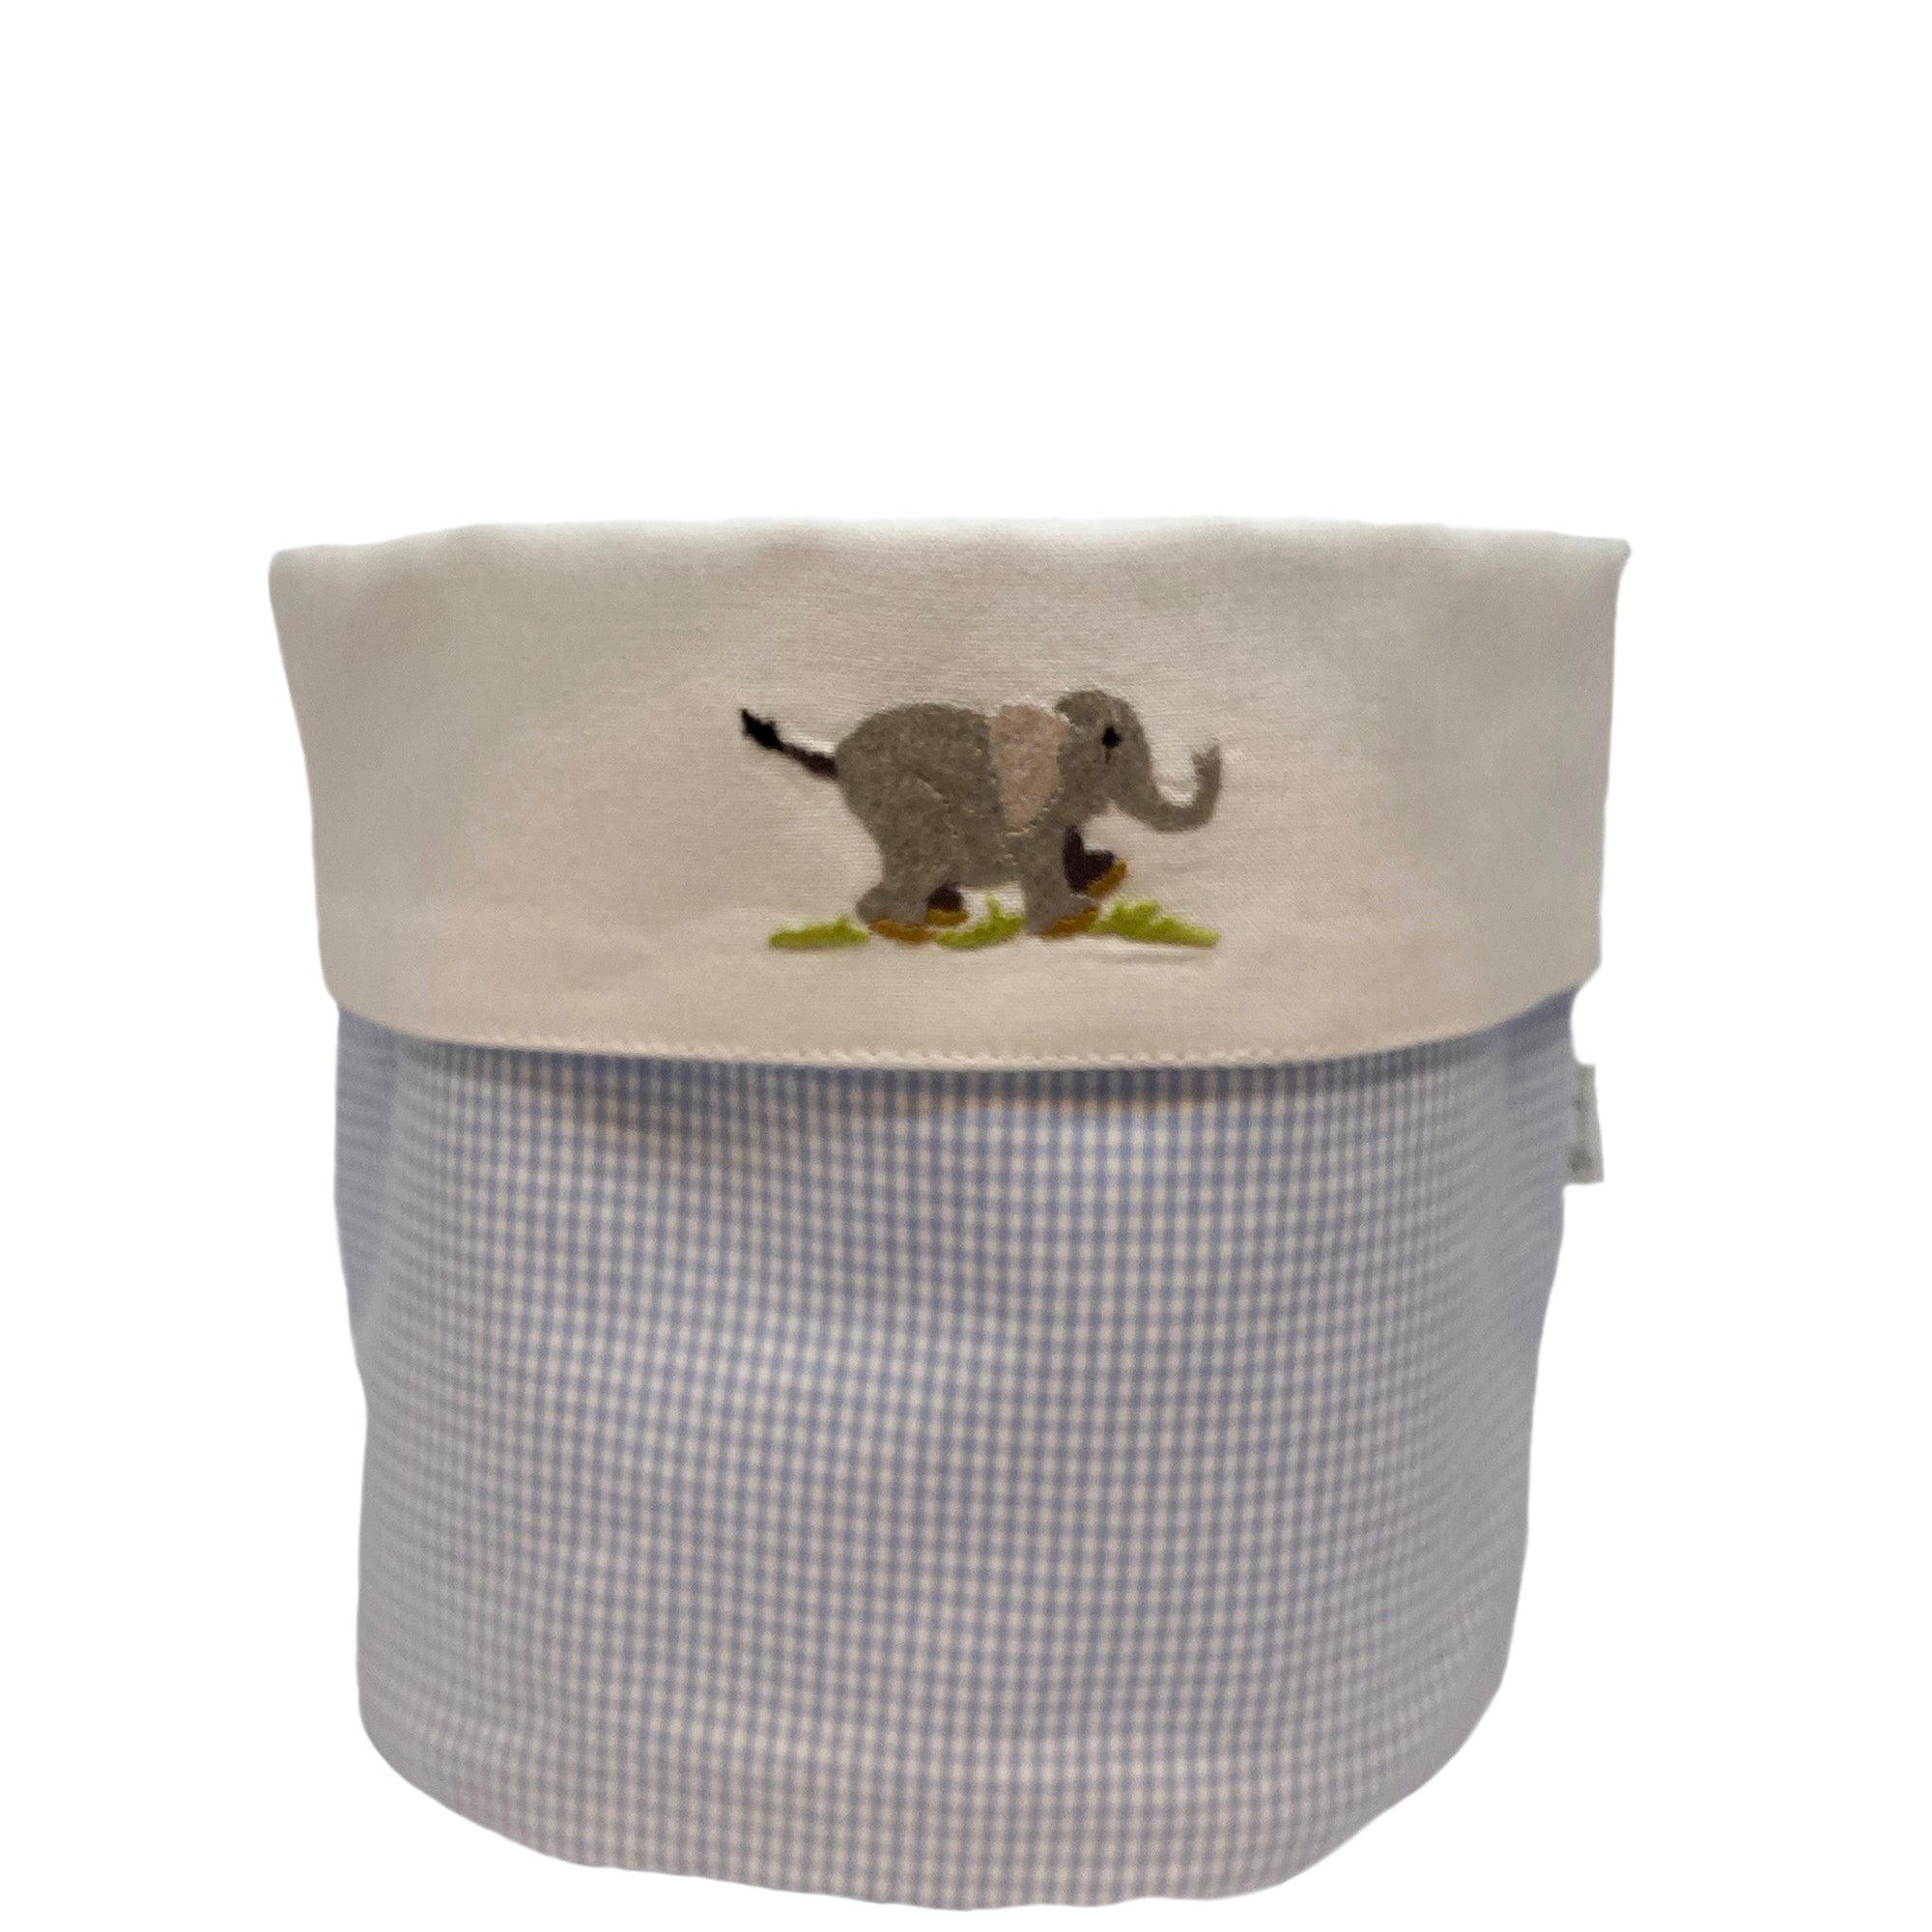 baby vanity holders with on safari elephant